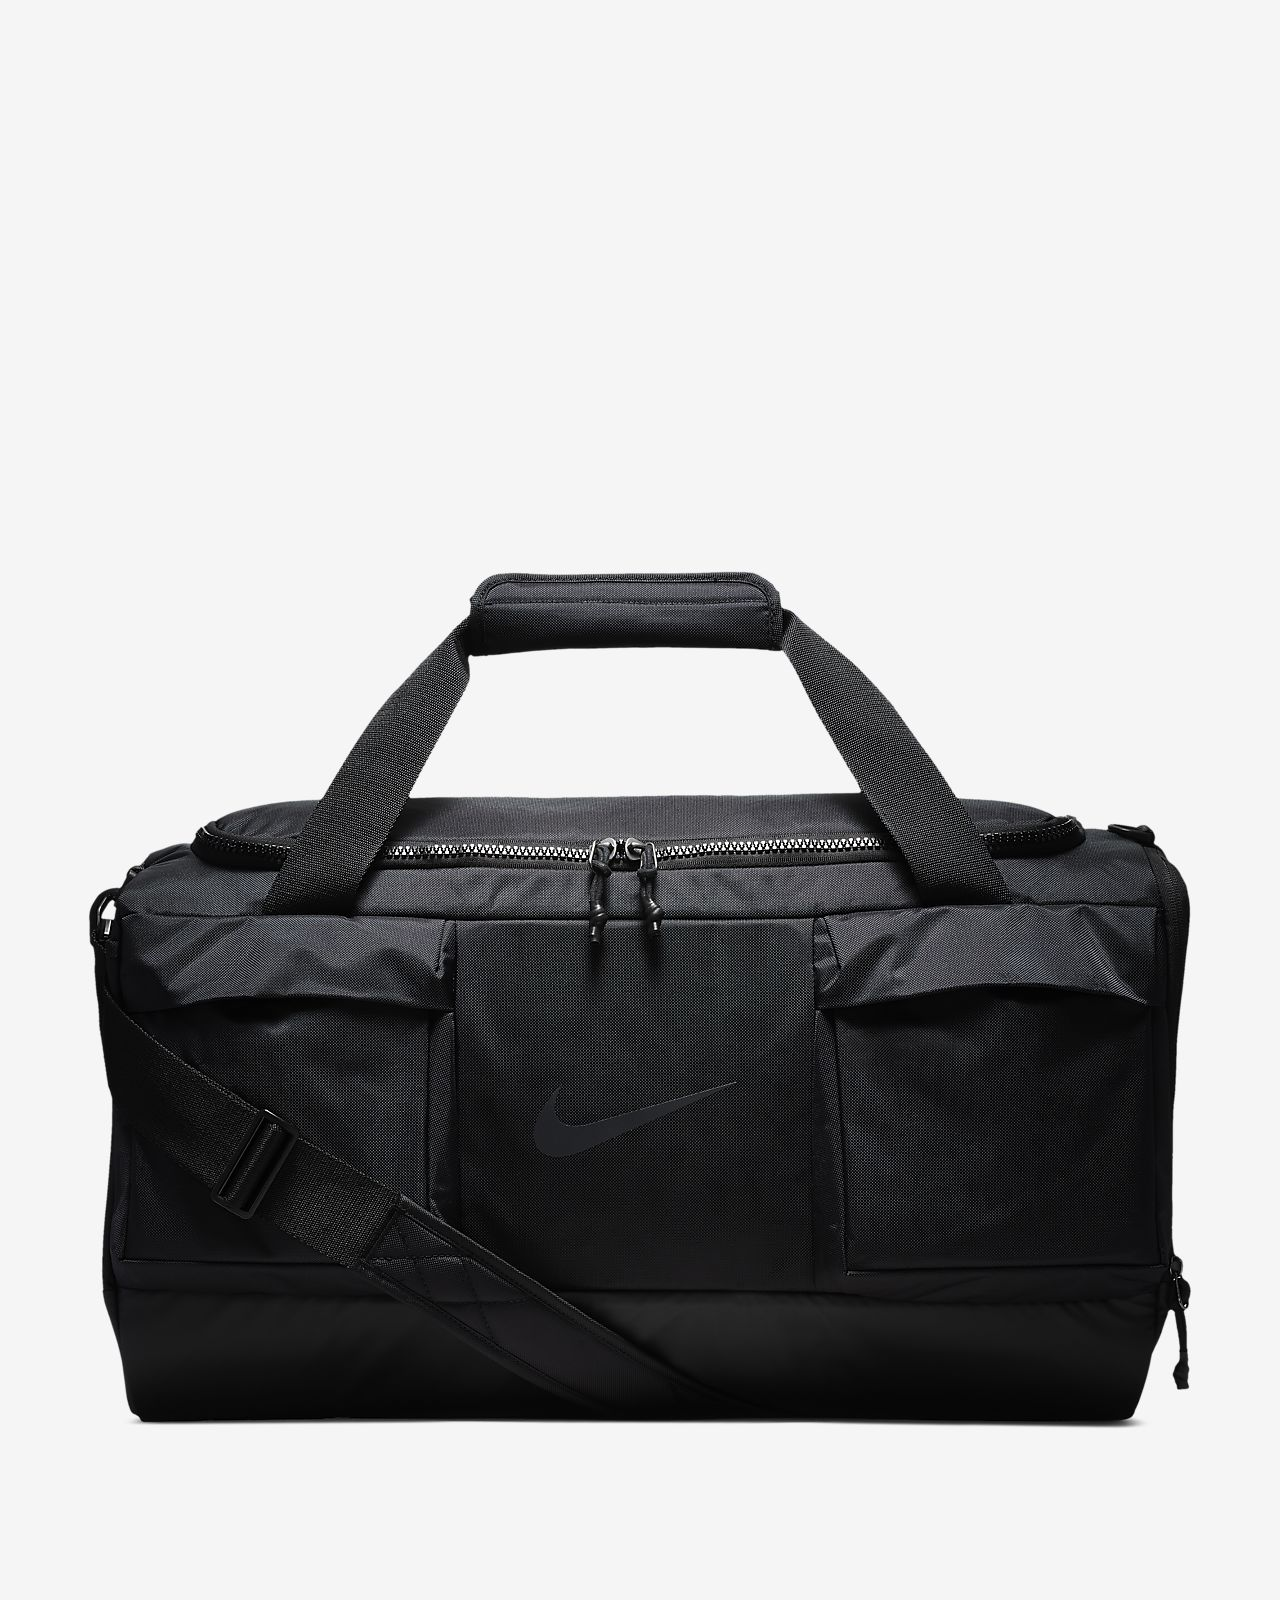 0141f3fb7dfd Nike Vapor Power Men s Training Duffel Bag (Medium). Nike.com AU